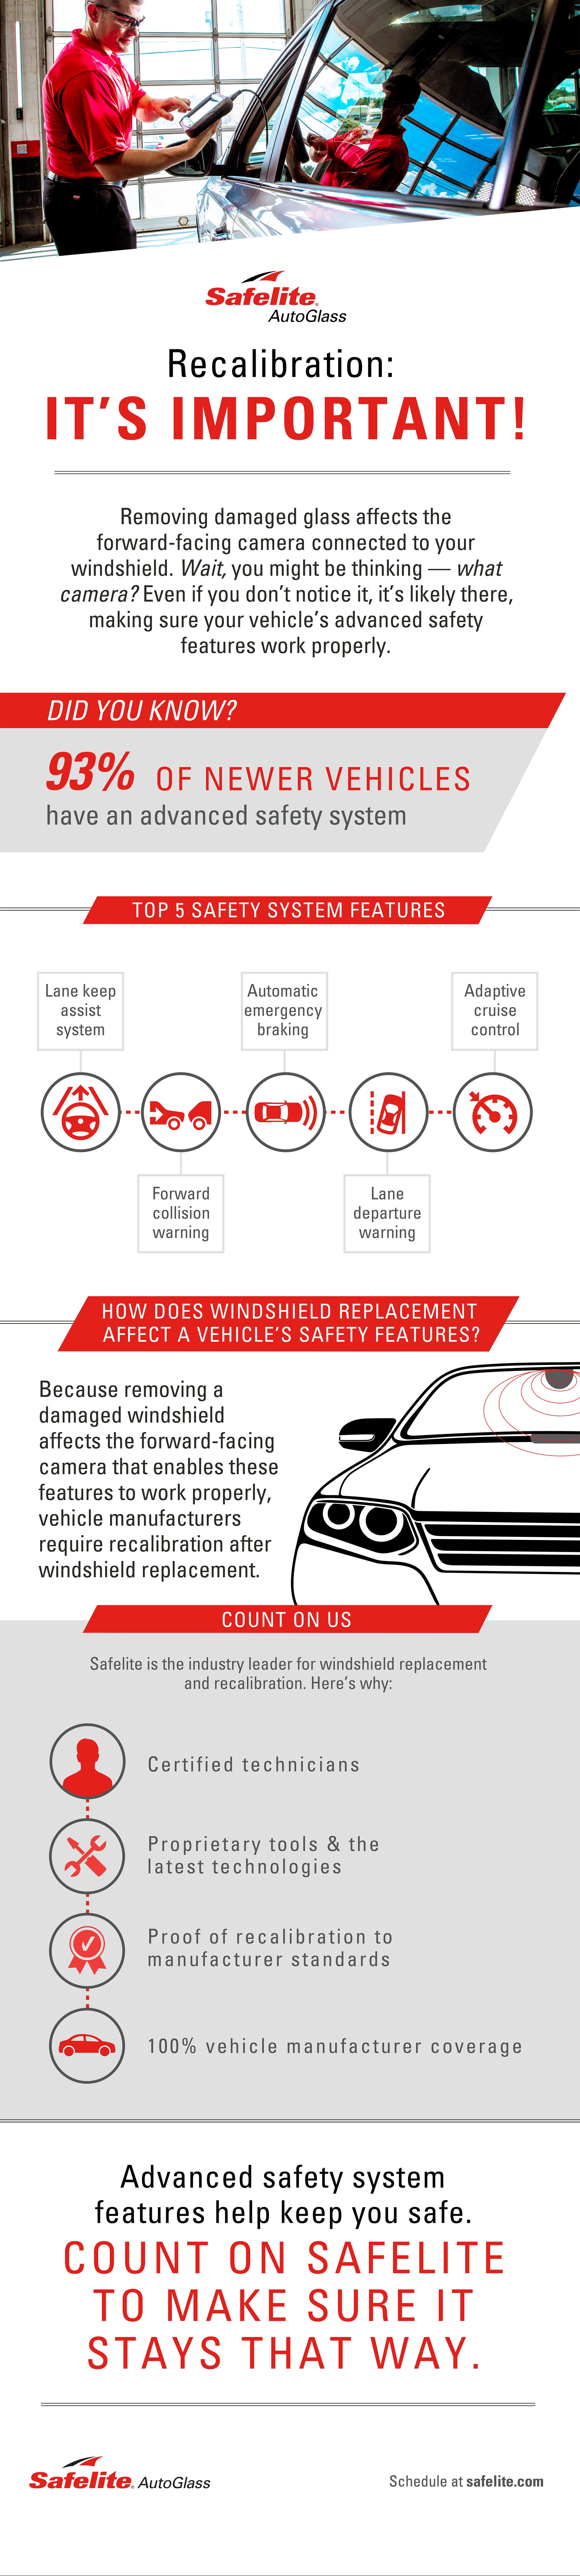 Why recalibrating your vehicle's advanced safety system is important